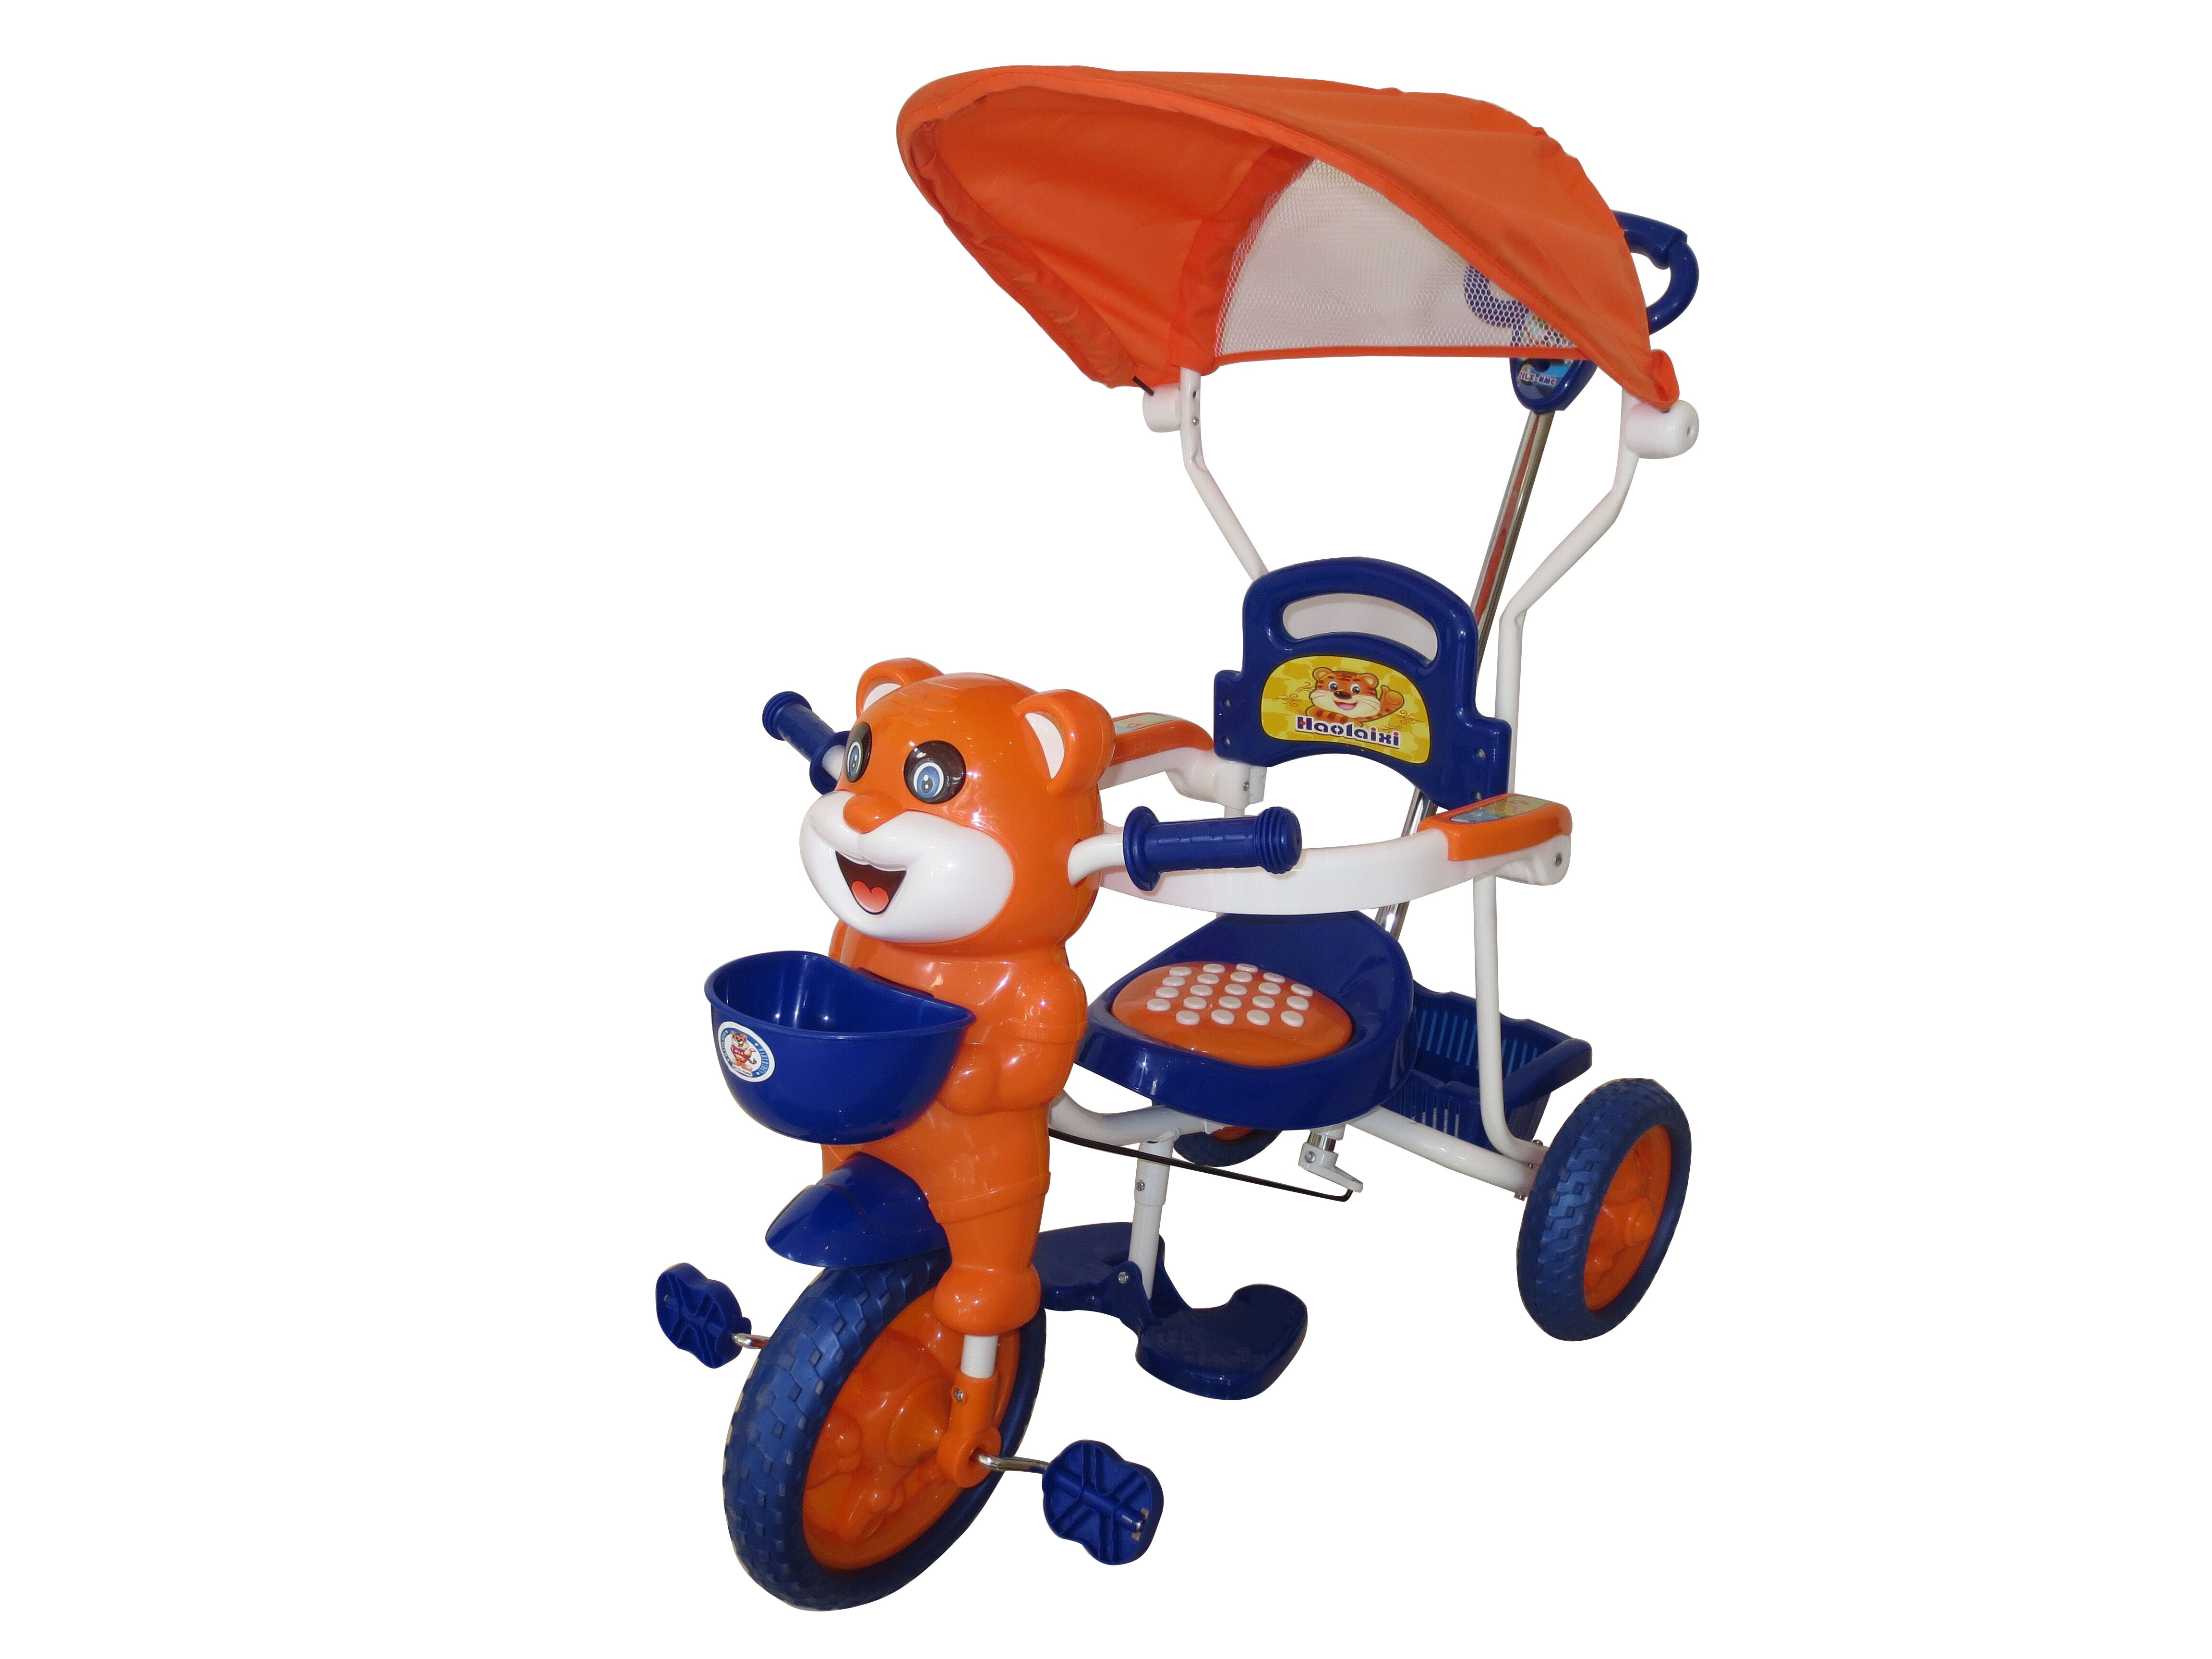 Peachbag proudly presents HLX-NMC HAPPY TIGER KIDS ROCKING TRICYCLE - BLUE/ORANGE (EASY ASSEMBLY EDITION). Best features of this kids tricycle are :  -BUCKET SEAT FOR COMFORT AND SAFETY -BROAD TYRES FOR SAFETY -DESIGNER REAR BASKET -INTERNATIONAL QUALITY AND STANDARD -VIRGIN PVC PARTS -ABSOLUTELY SAFE FOR CHILDREN  To Buy Online http://peachbag.com/index.php/hlx-nmc-happy-tiger-kids-rocking-tricycle-blue-orange-easy-assembly-edition.html